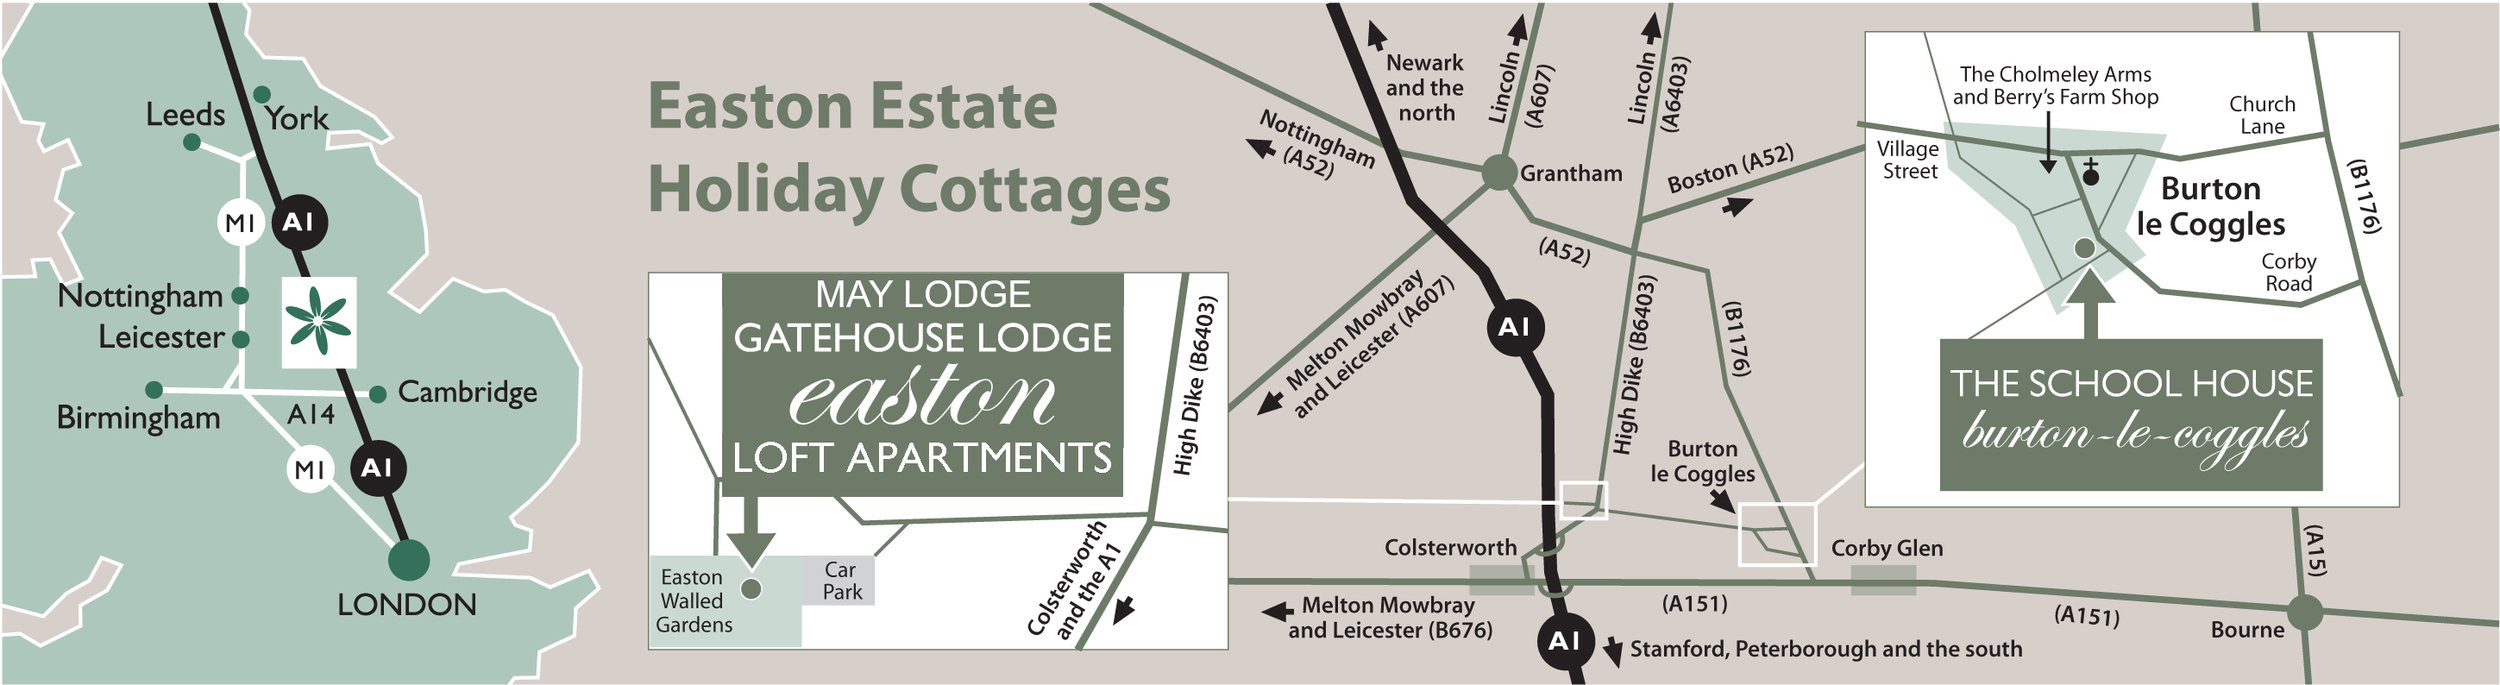 Easton Holiday Cottages - Boutique accommodation near Grantham, Lincolnshire